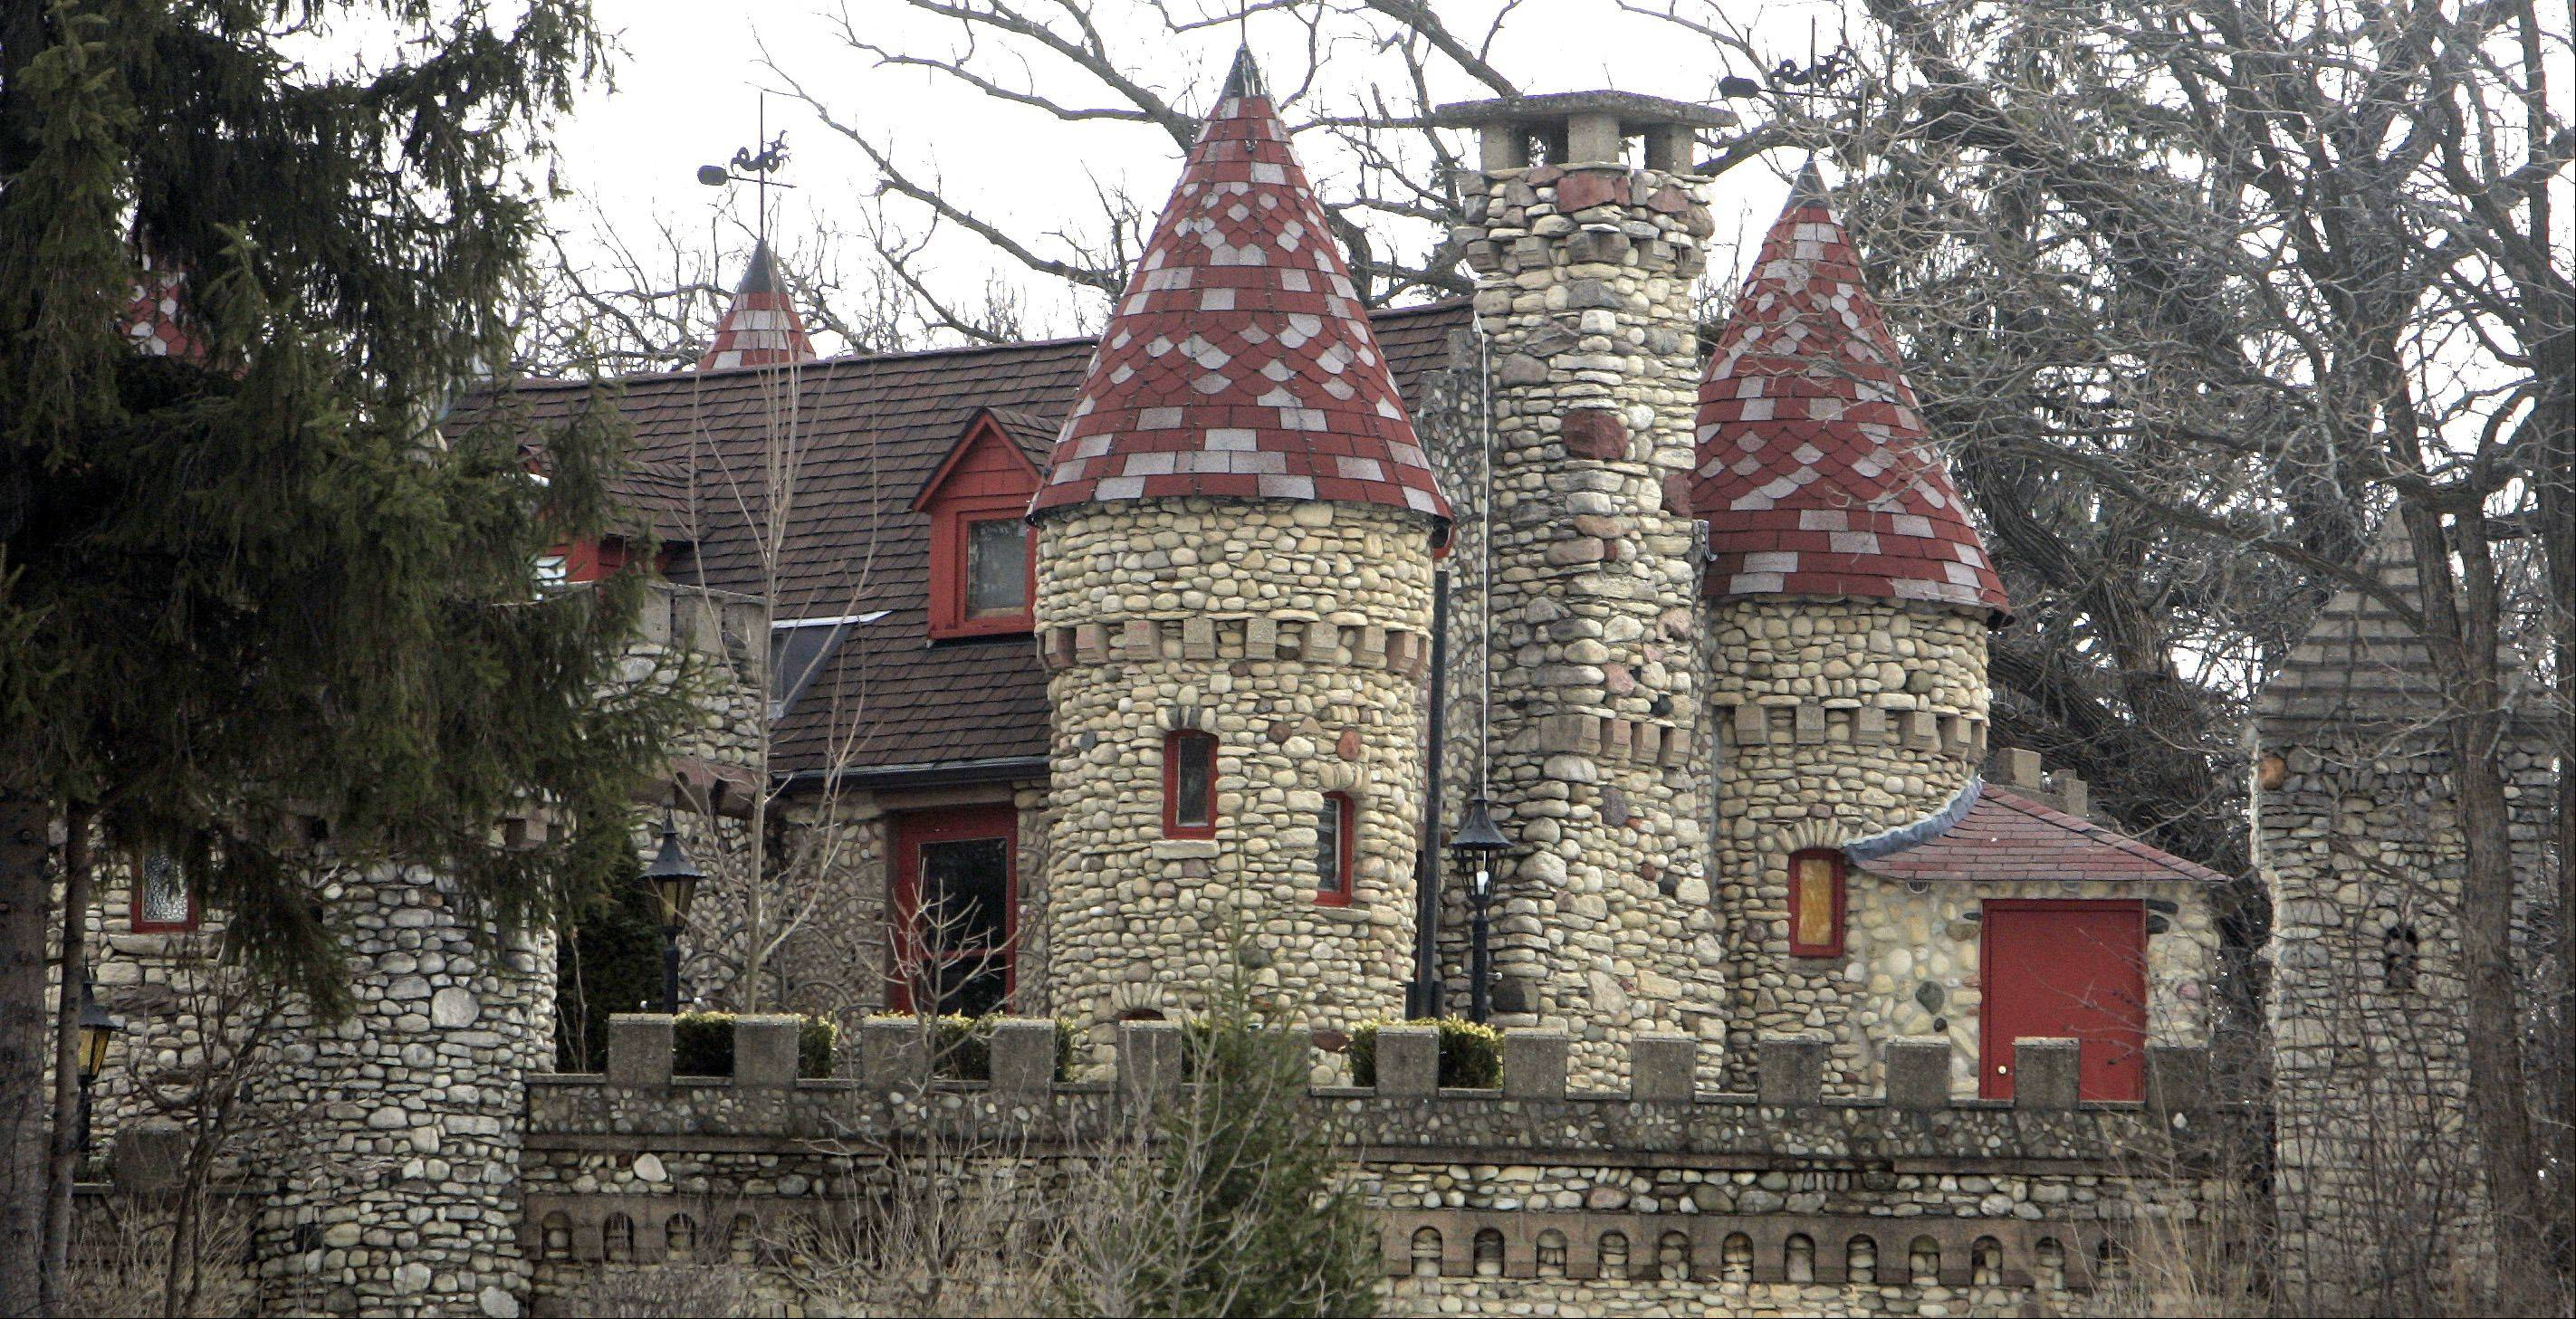 The issue of whether Bettendorf Castle in Fox River Grove can host tours will be the subject of a trial on Oct. 13.